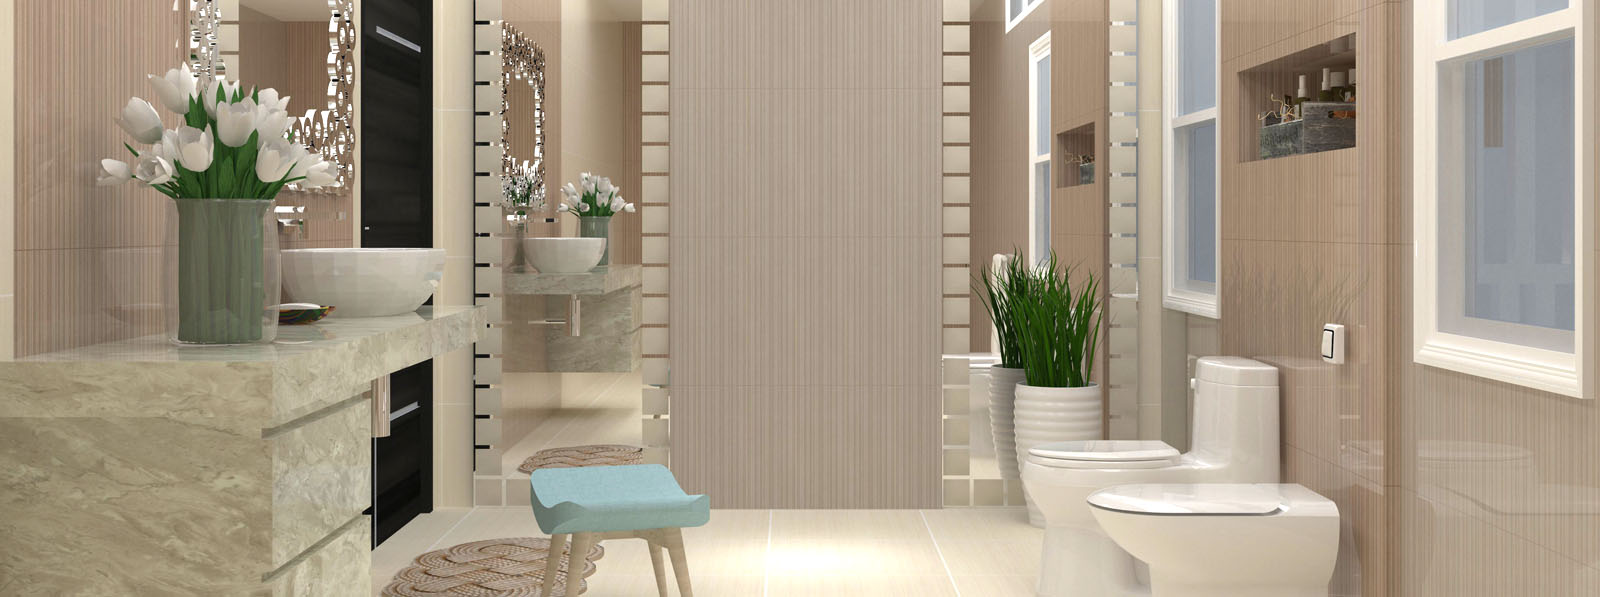 Mariwasa Siam Ceramics Inc Full Hd Tiles Philippines